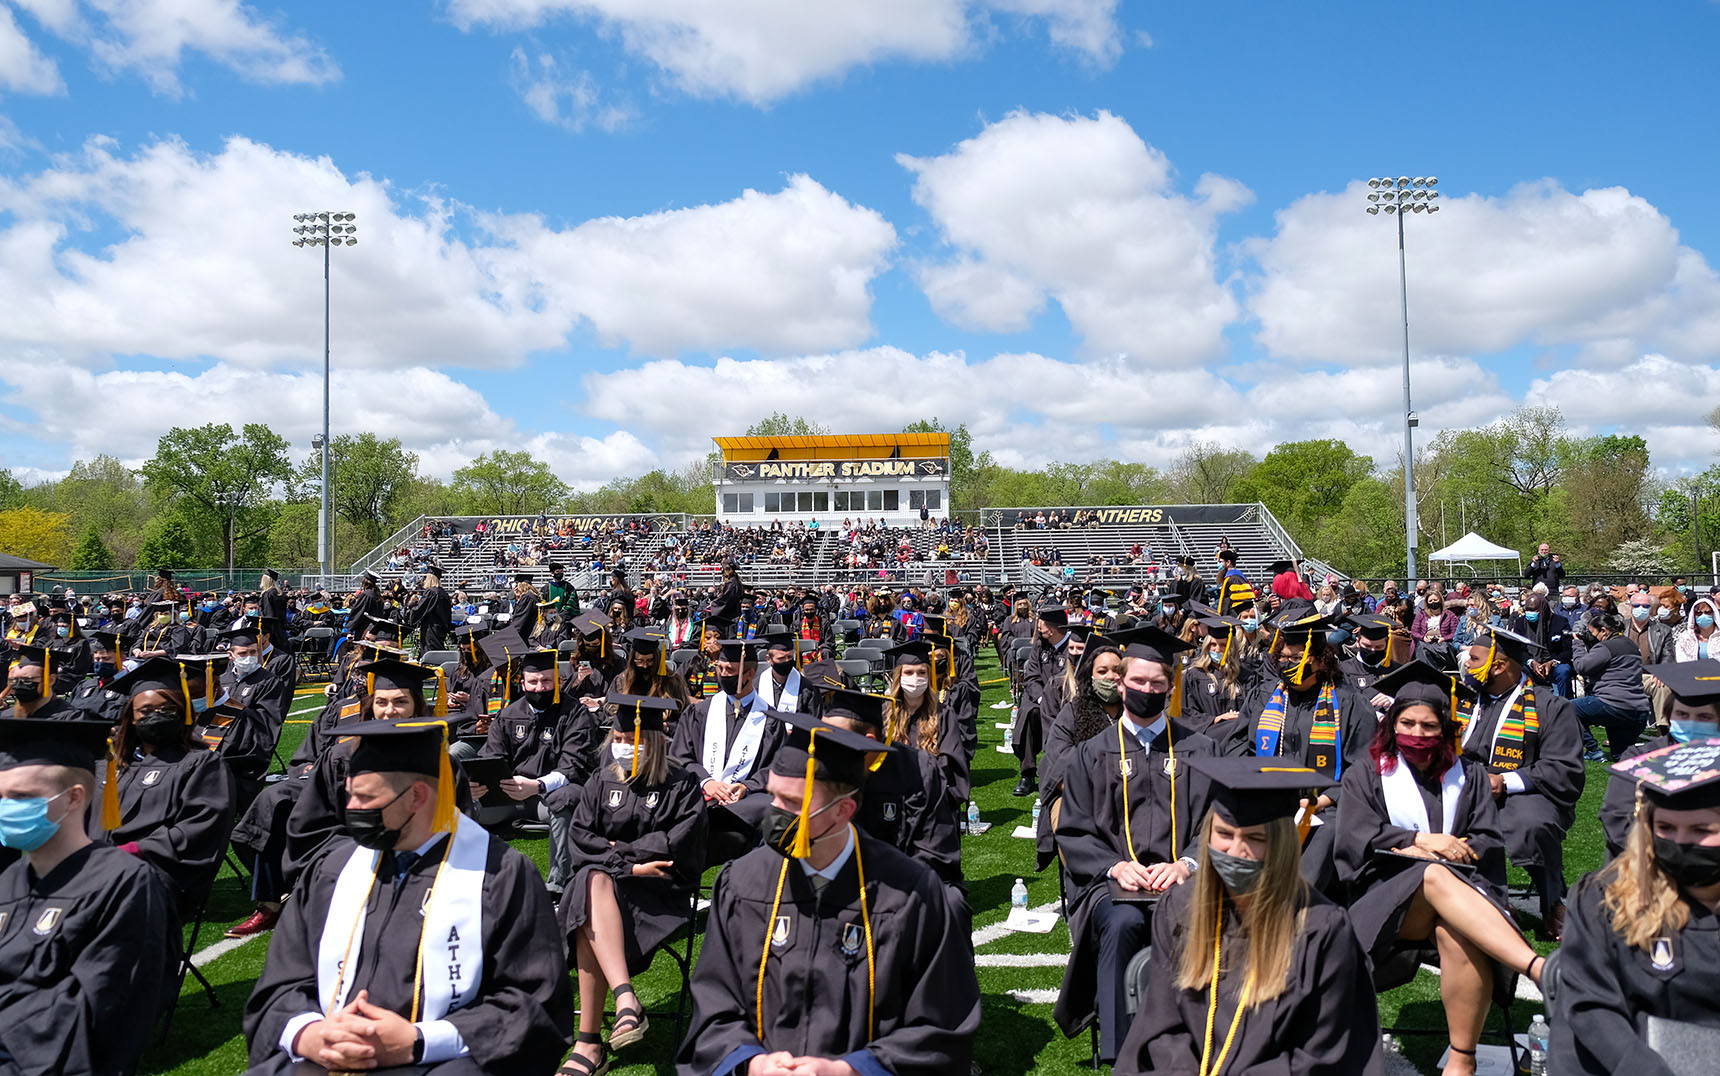 ODU's 113th Commencement Ceremony in Panther Stadium